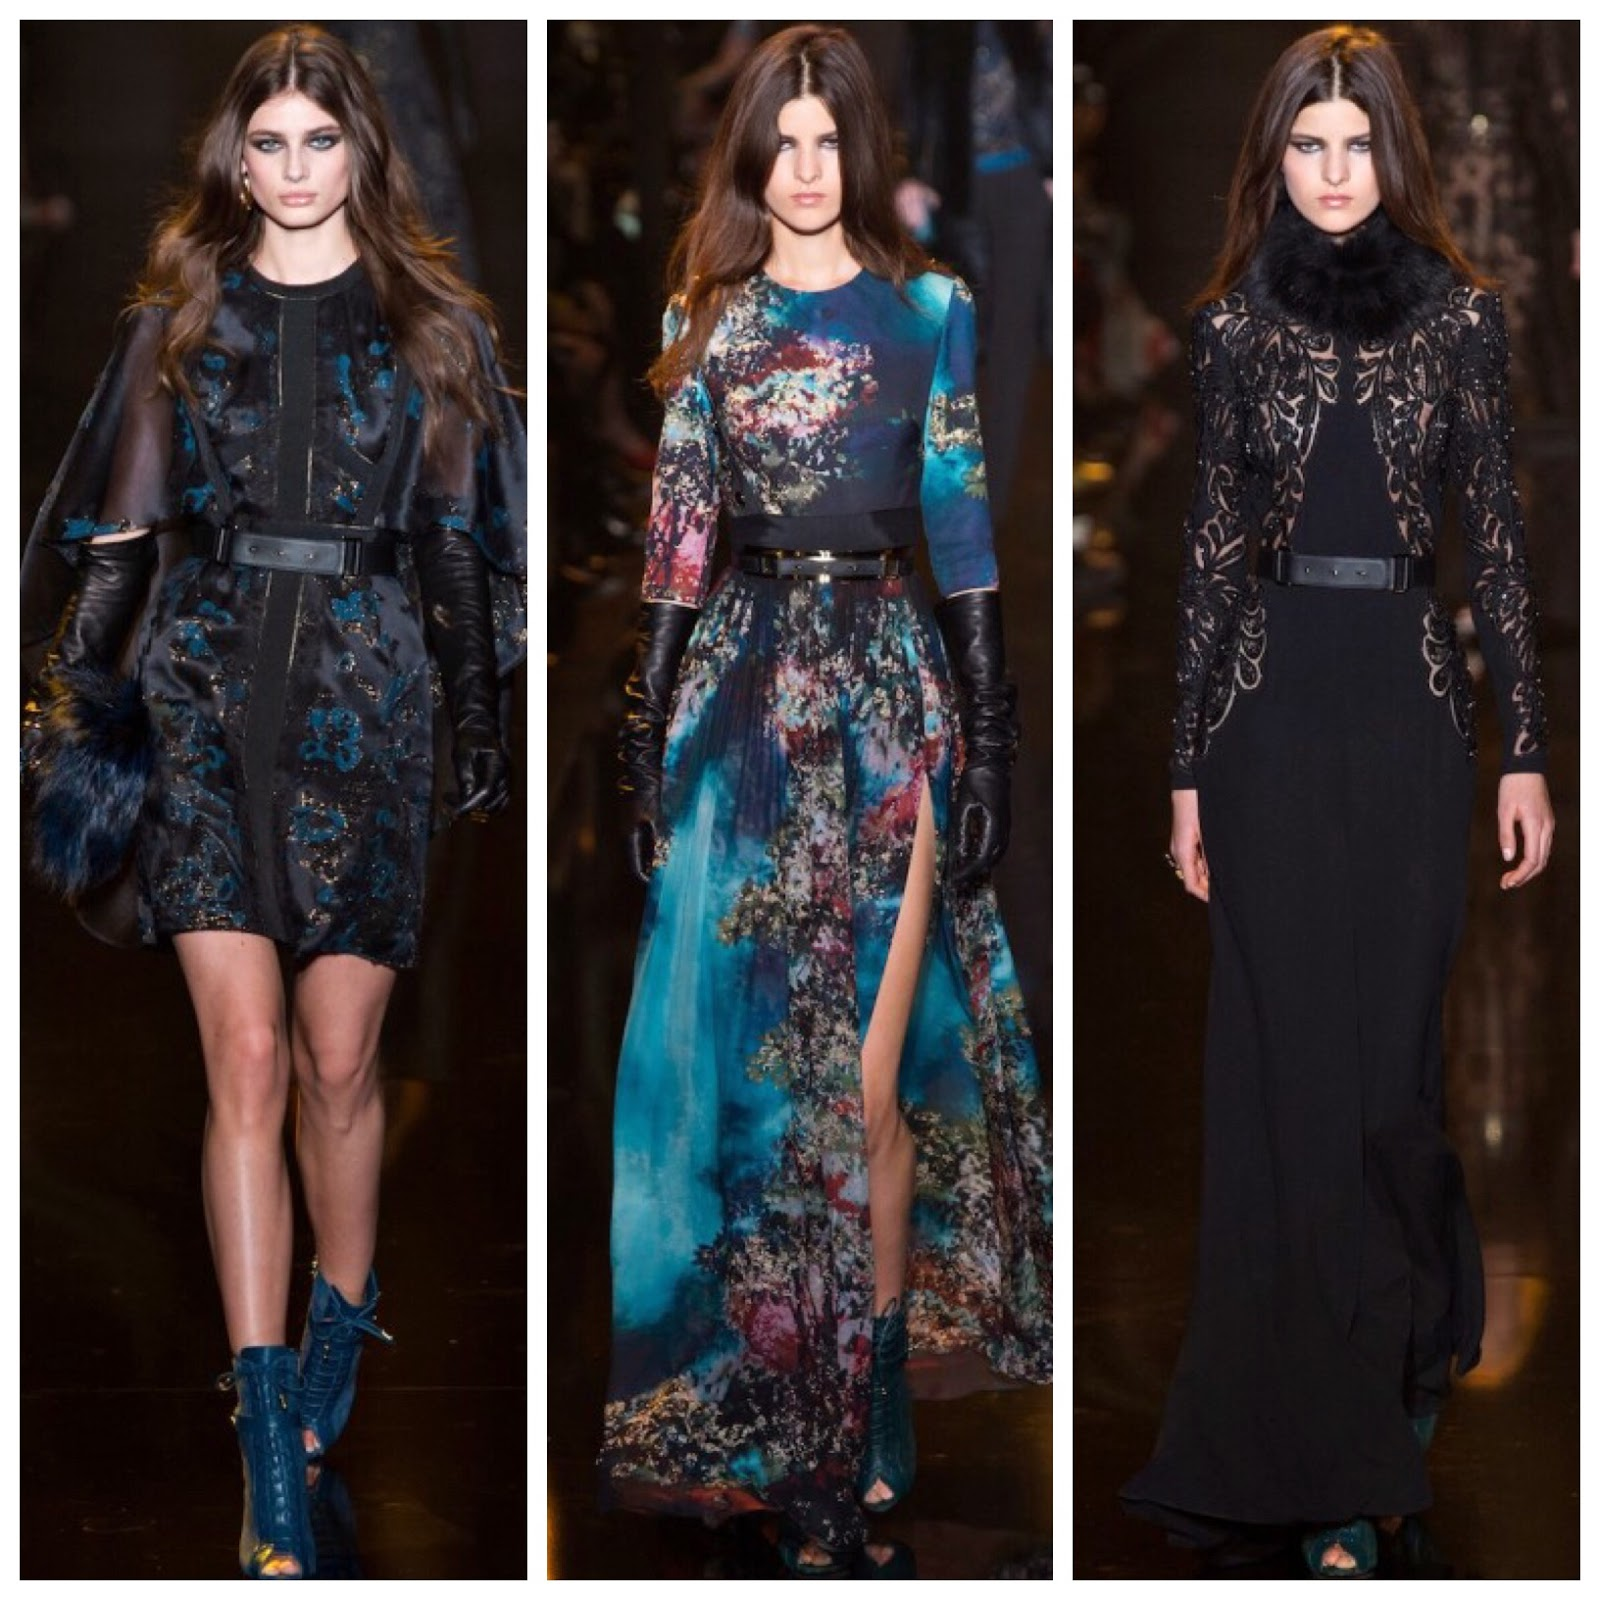 Elie Saab herfst winter collectie 2015